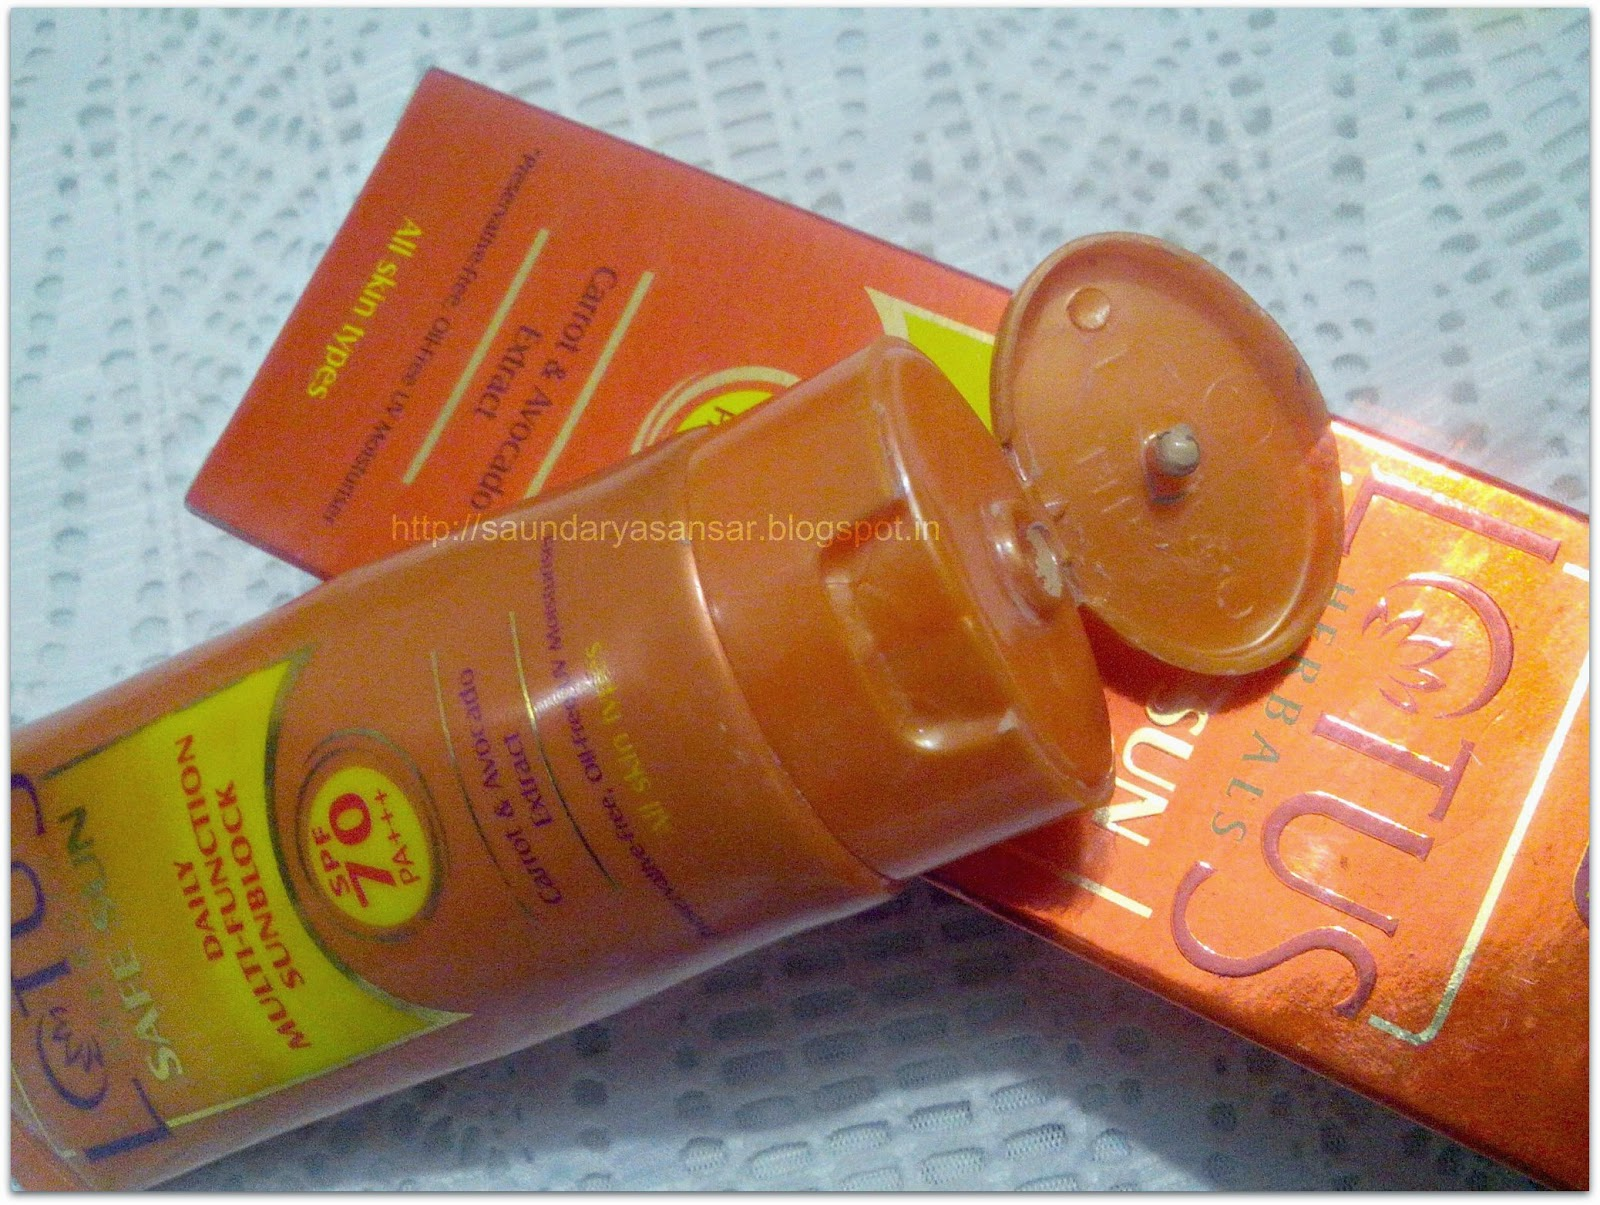 LOTUS Safe Sun- Daily Multifunction Sunblock- spf 70 PA+++ Review